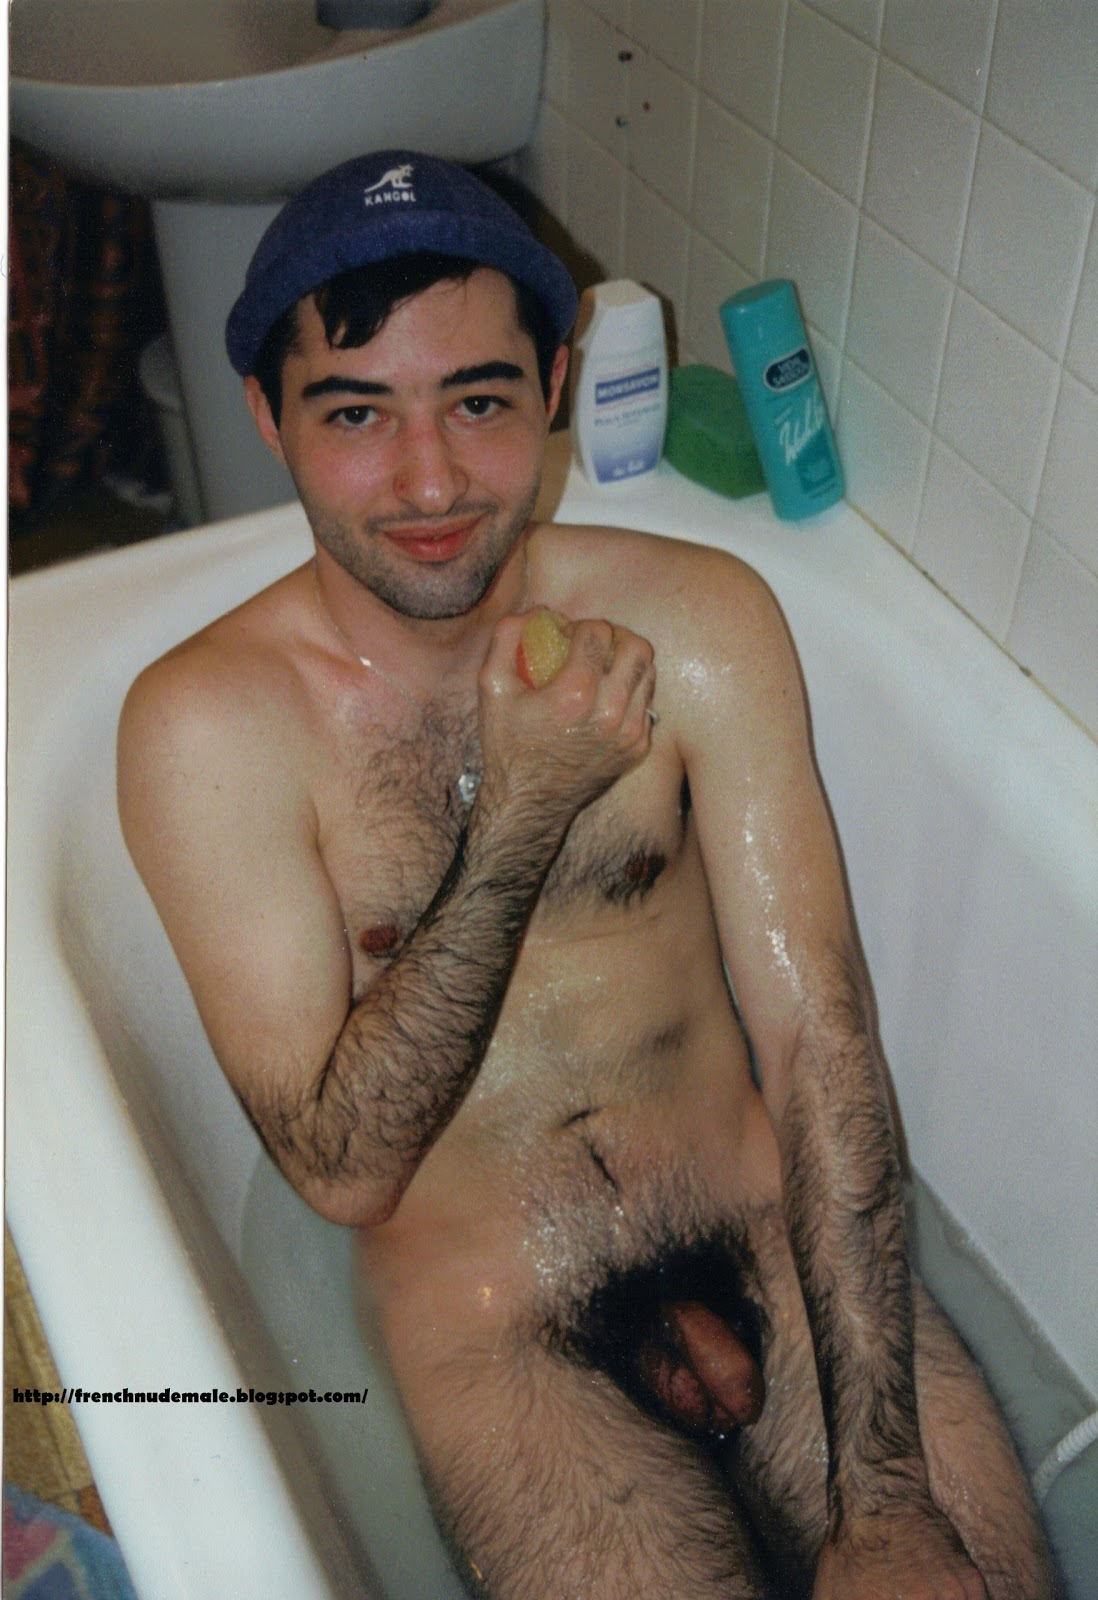 Naked men in a bathtub tempting